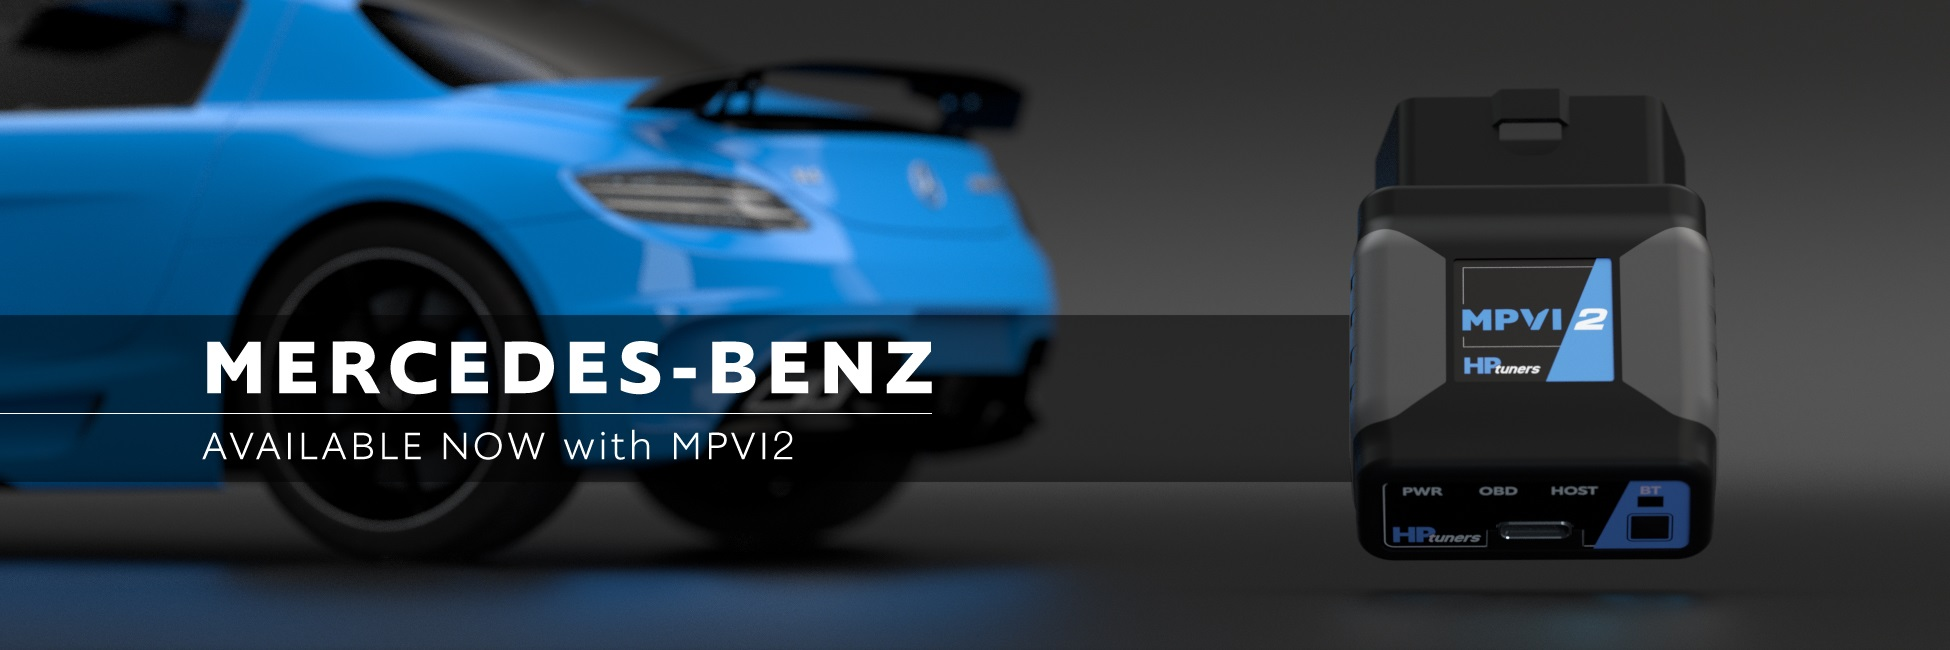 Mercedes-Benz Supported on MPVI2